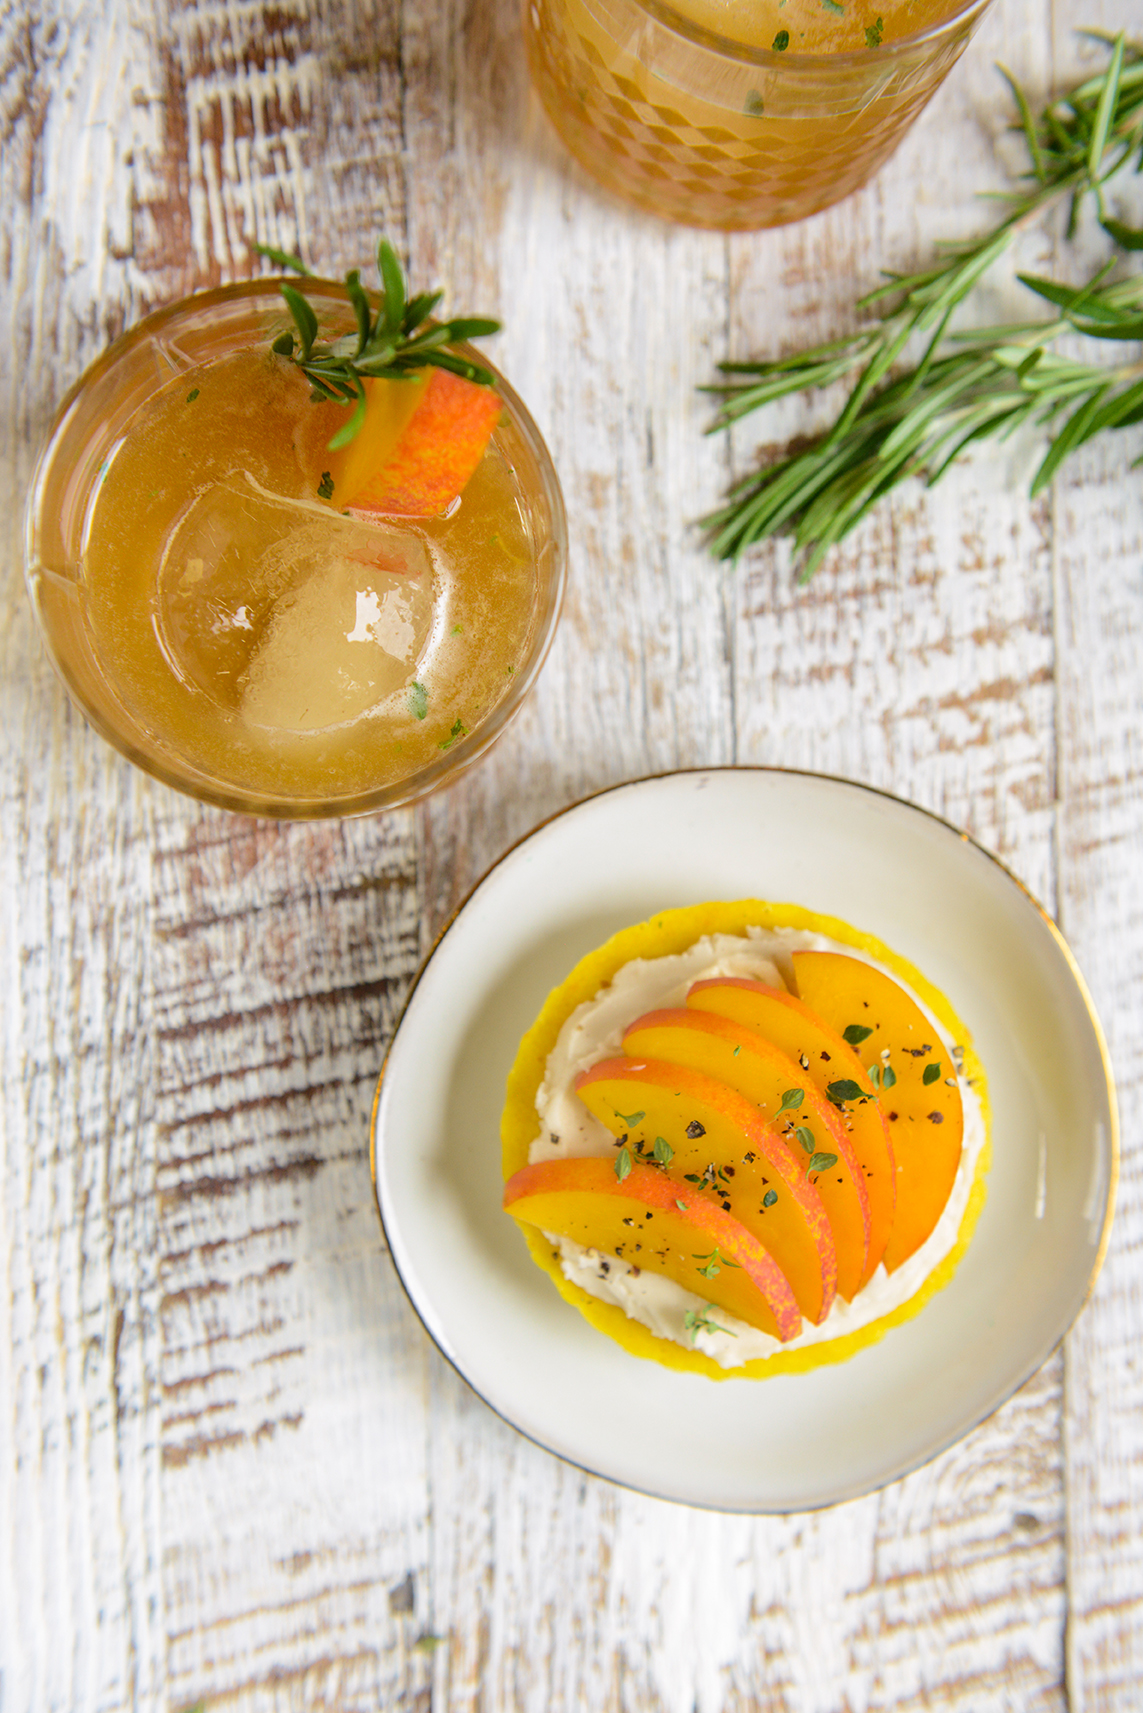 Cheers to the Weekend: Nectarine Thyme Whiskey Cocktails